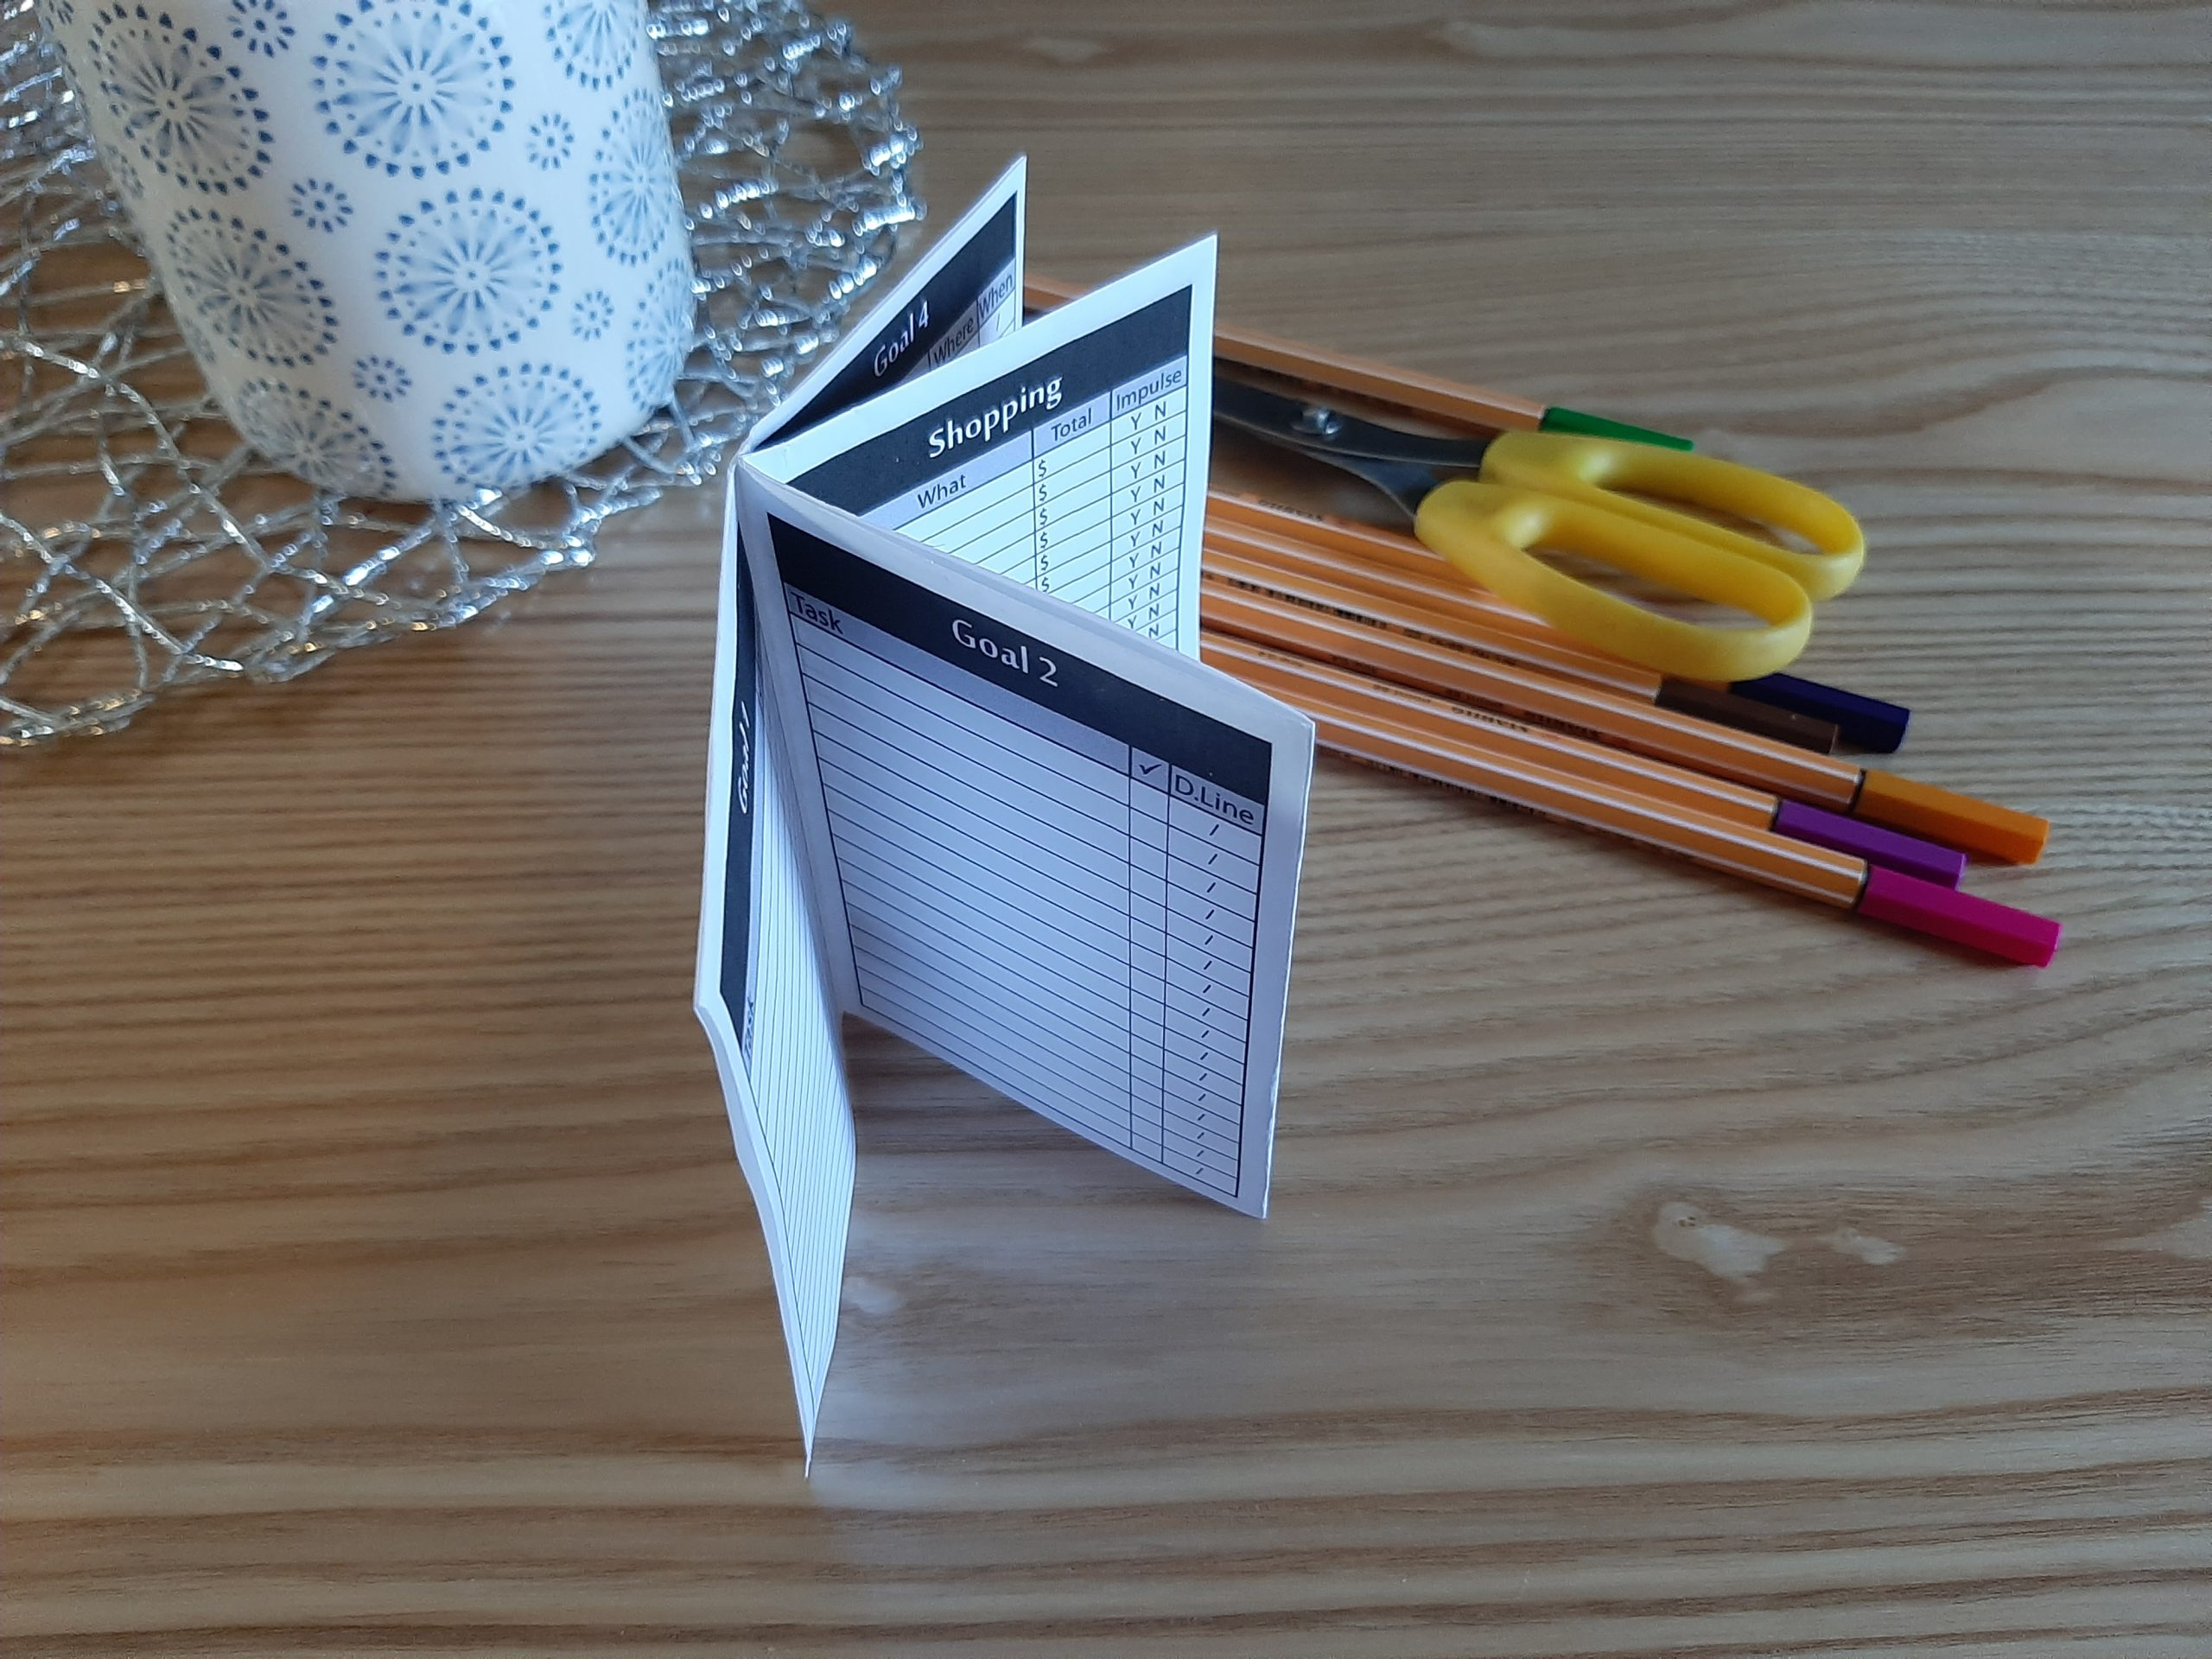 Printable // Monthly Goals // Tracker // Pen to Paper // Low Tech // Mini-book // Pocket Organiser pdf printable easy simple to use minimalist design pen paper analogue tactile pocket month habit spending tracker budget meal planning to do list bullet journal get it done GTD